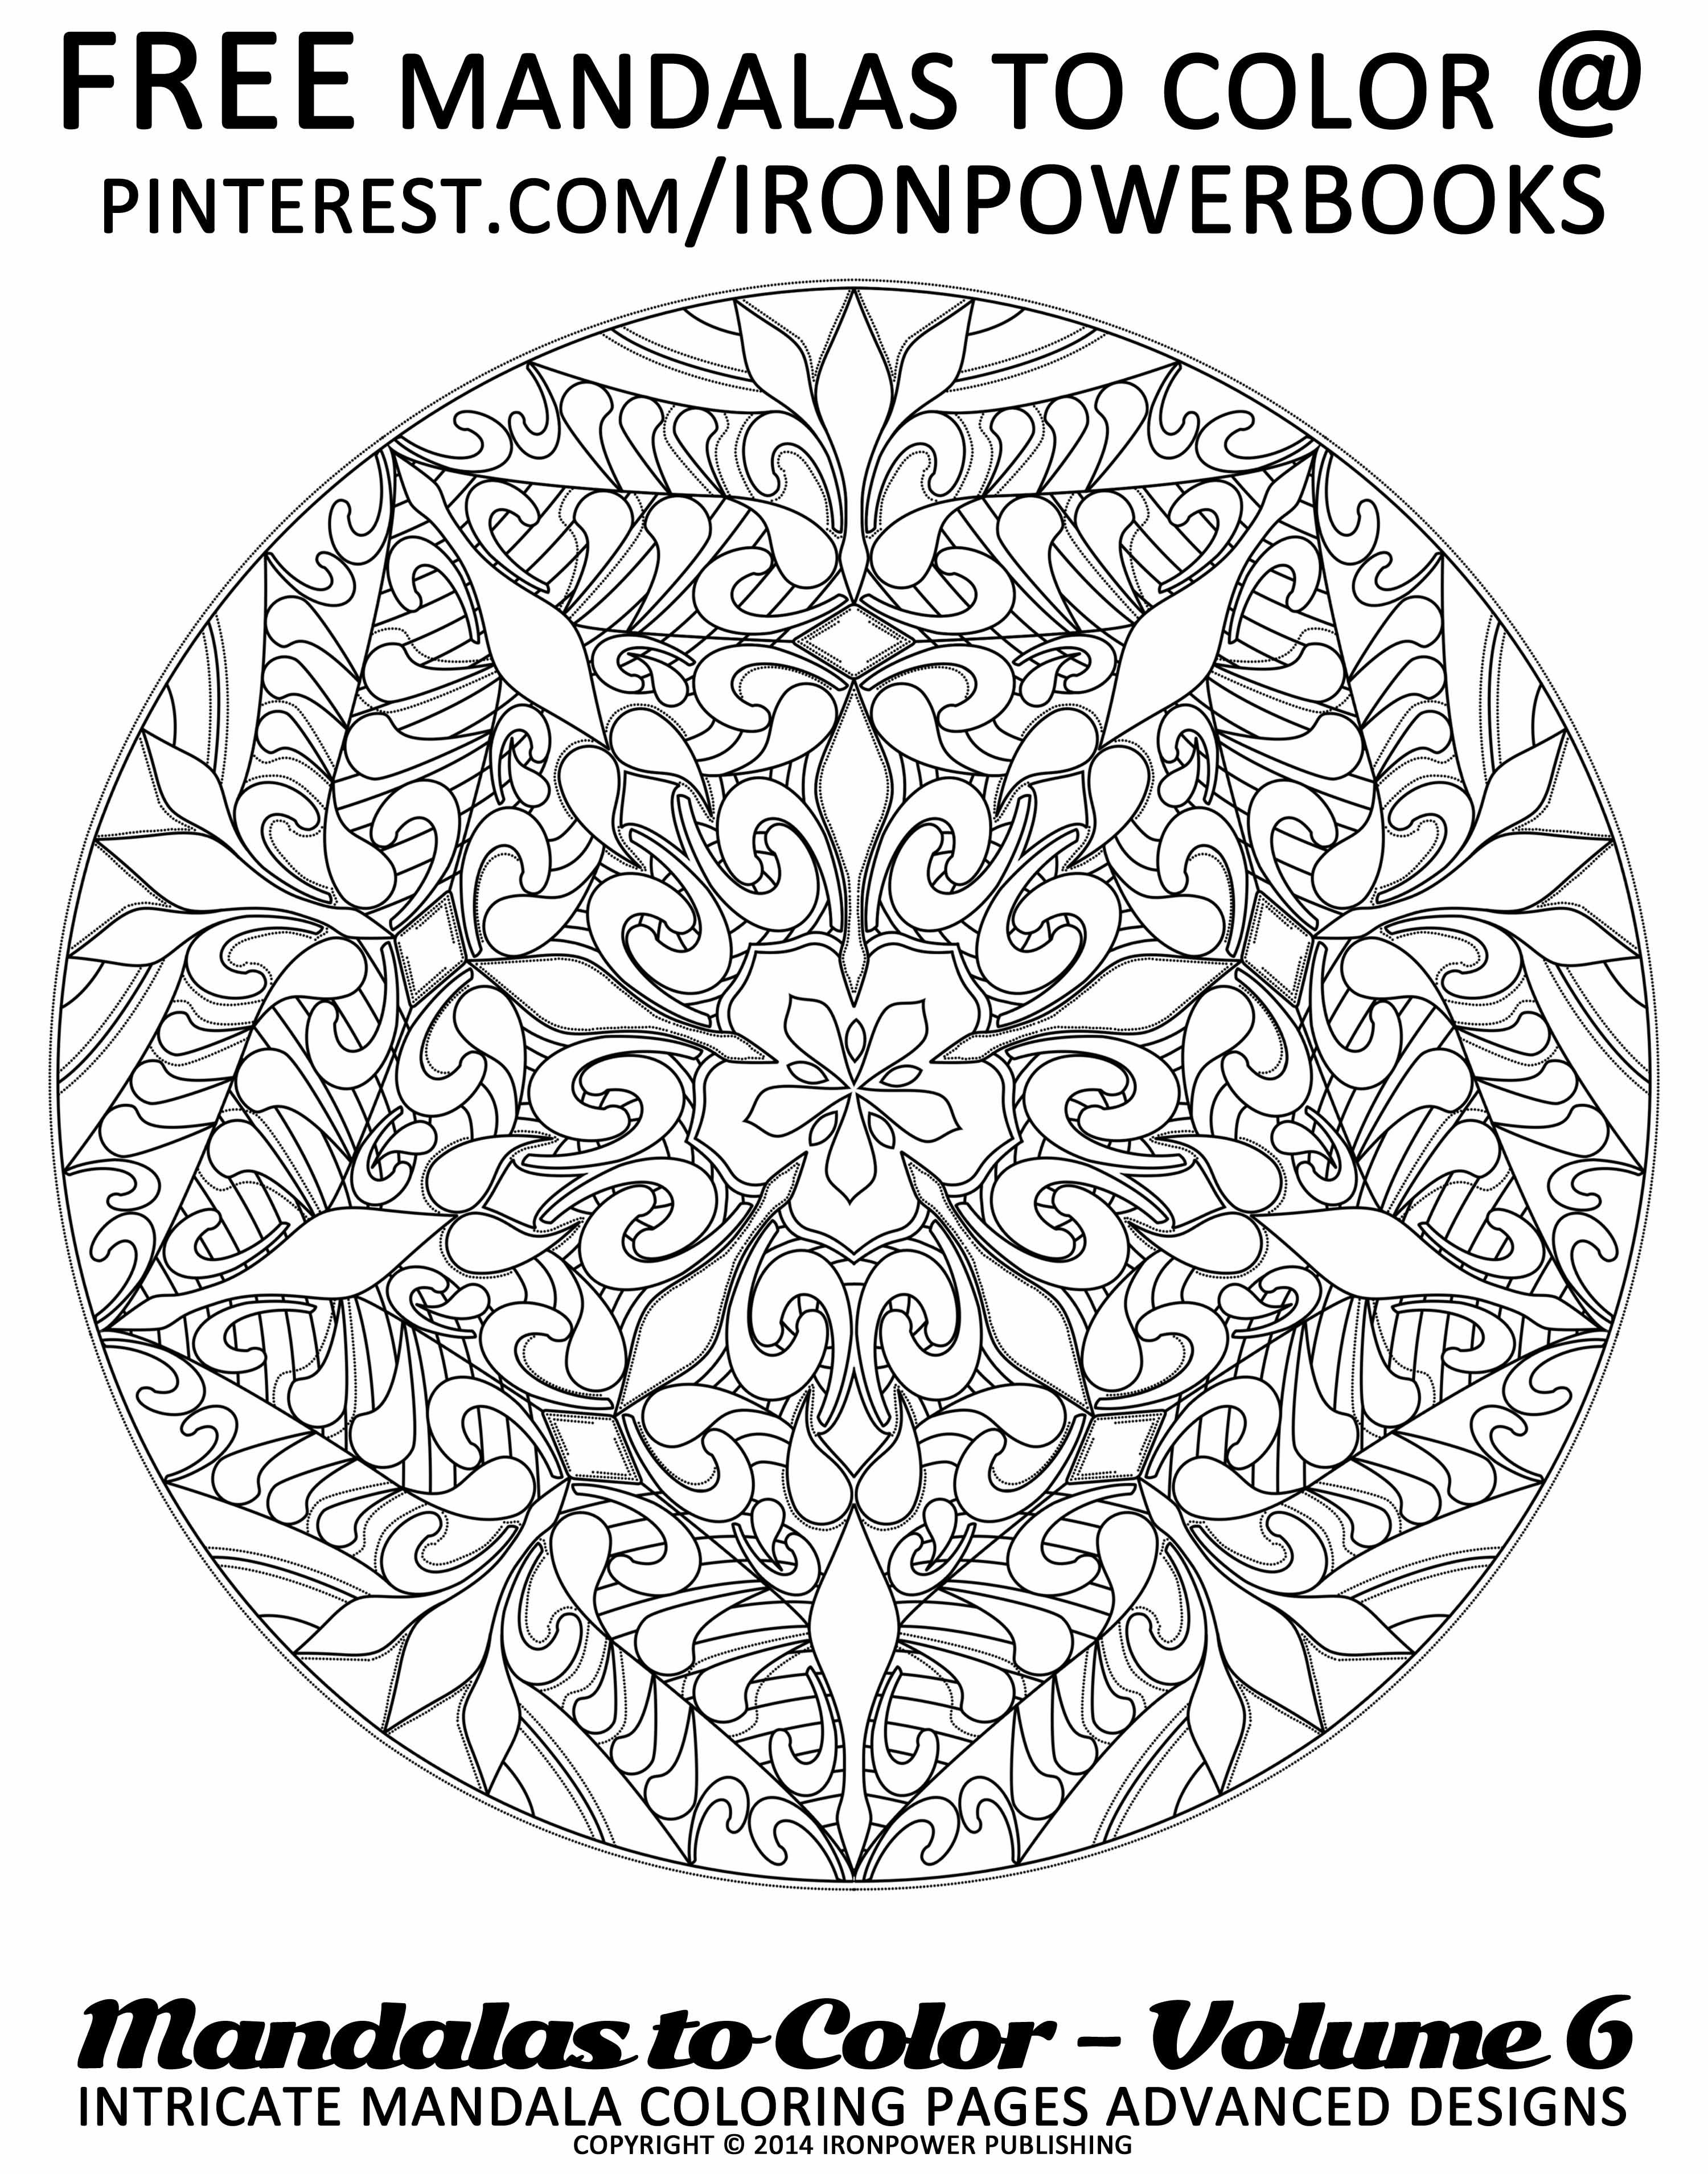 Intricate Mandala Coloring Pages For FREE